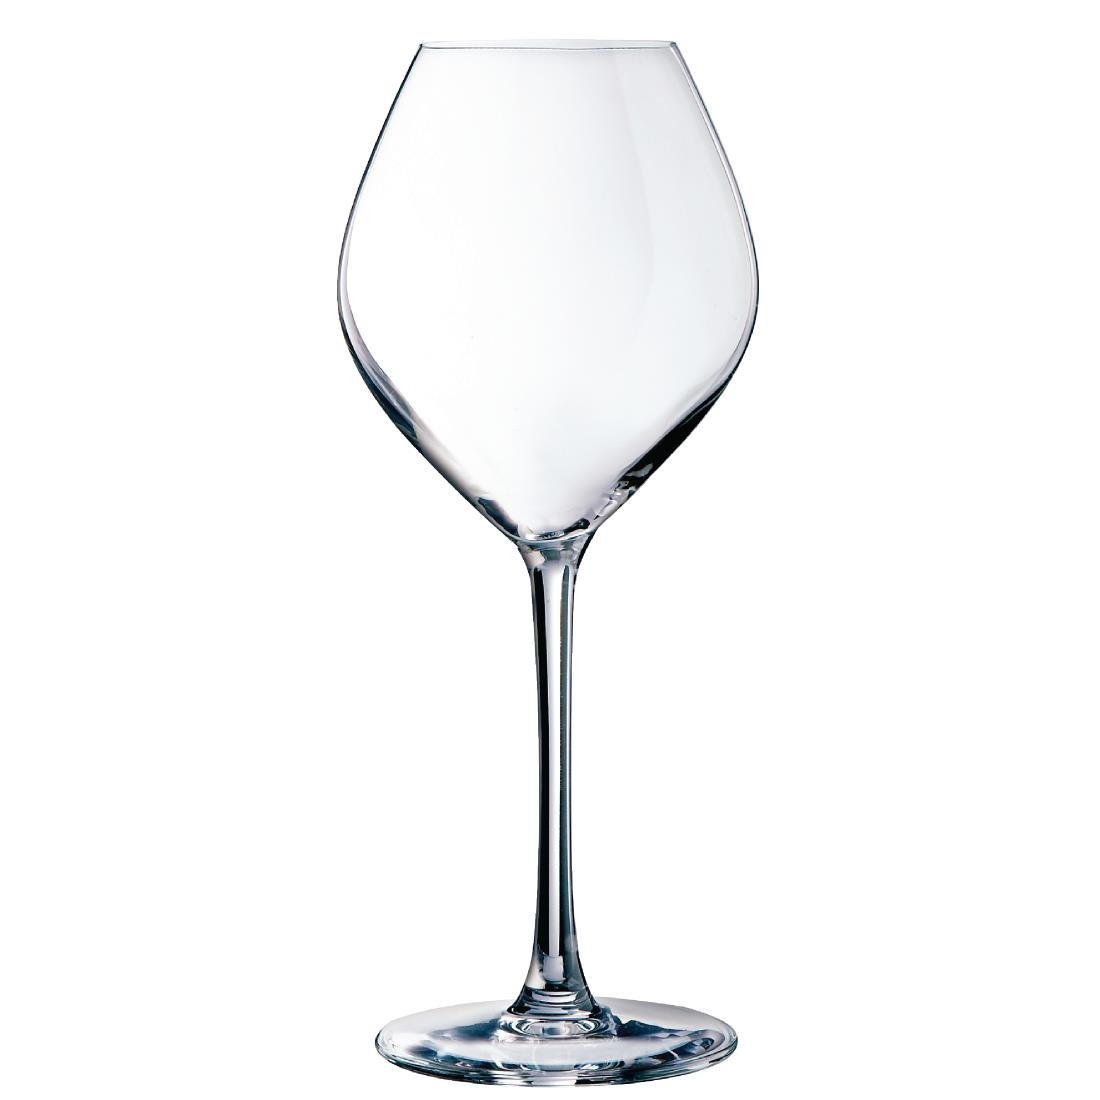 Arcoroc Grand Cepages Magnifique White Wine Glasses 350ml (Pack of 24)